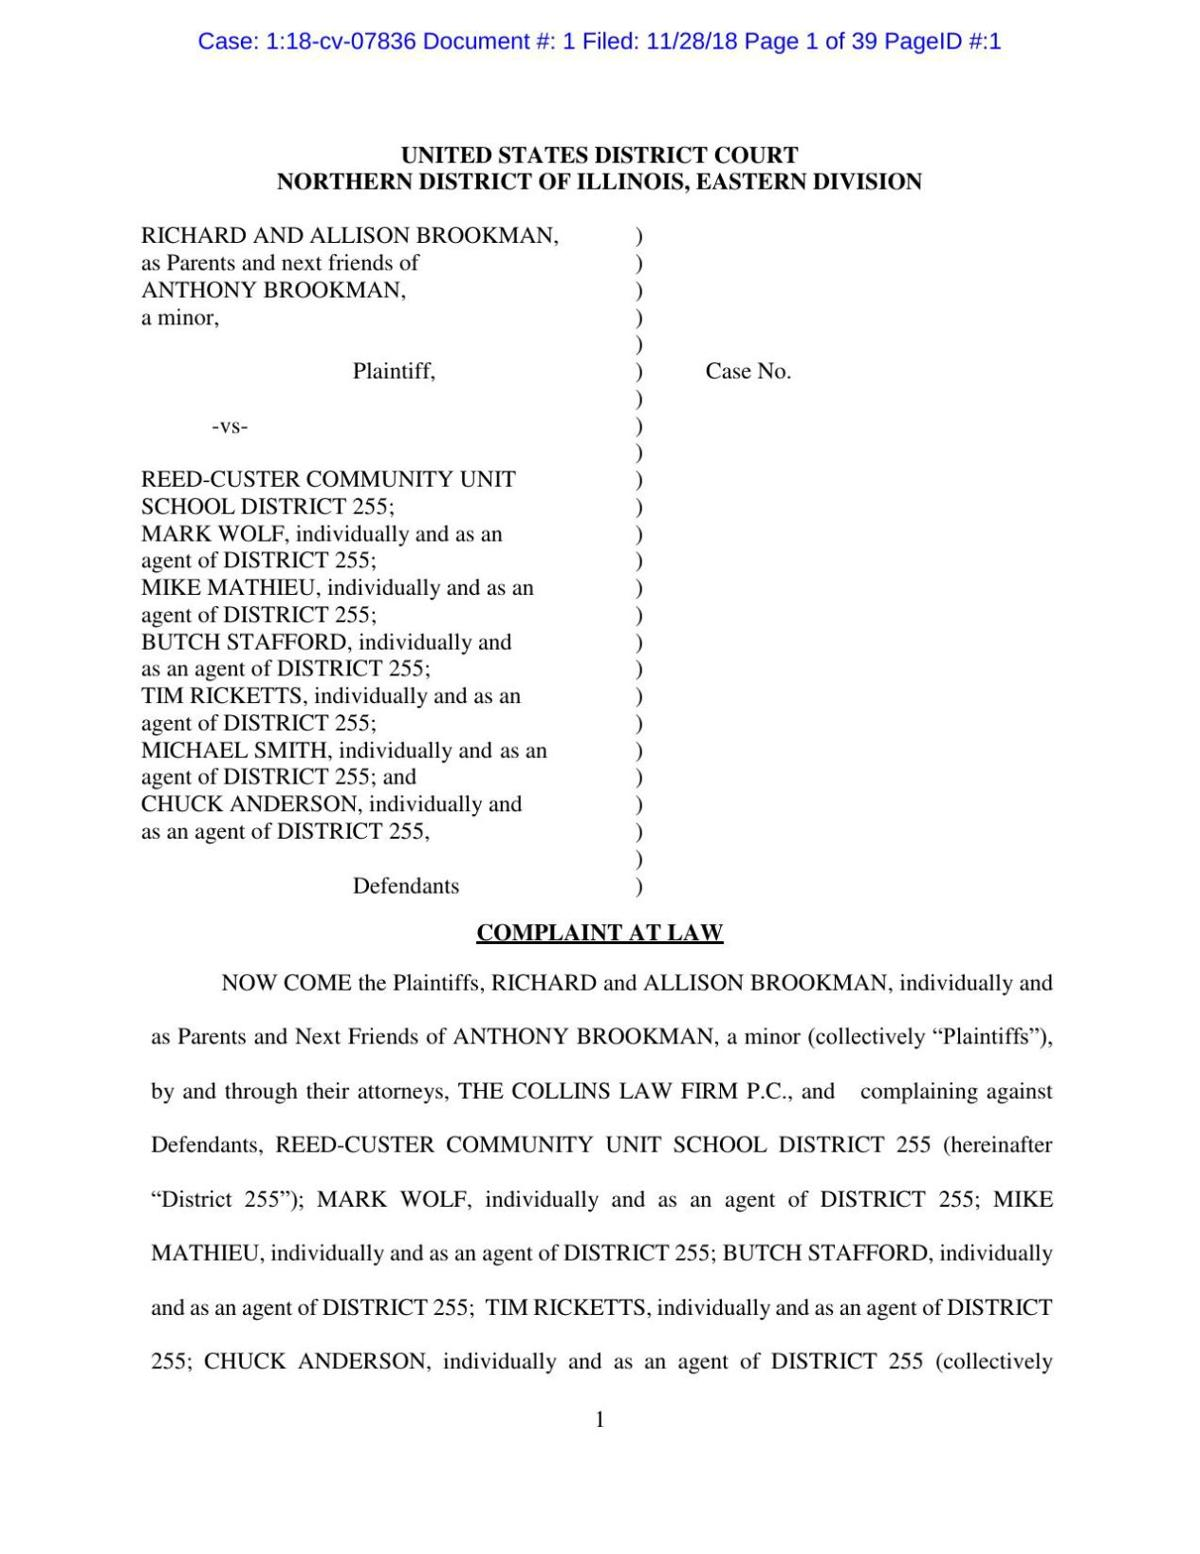 Parents of former Reed-Custer student file lawsuit against